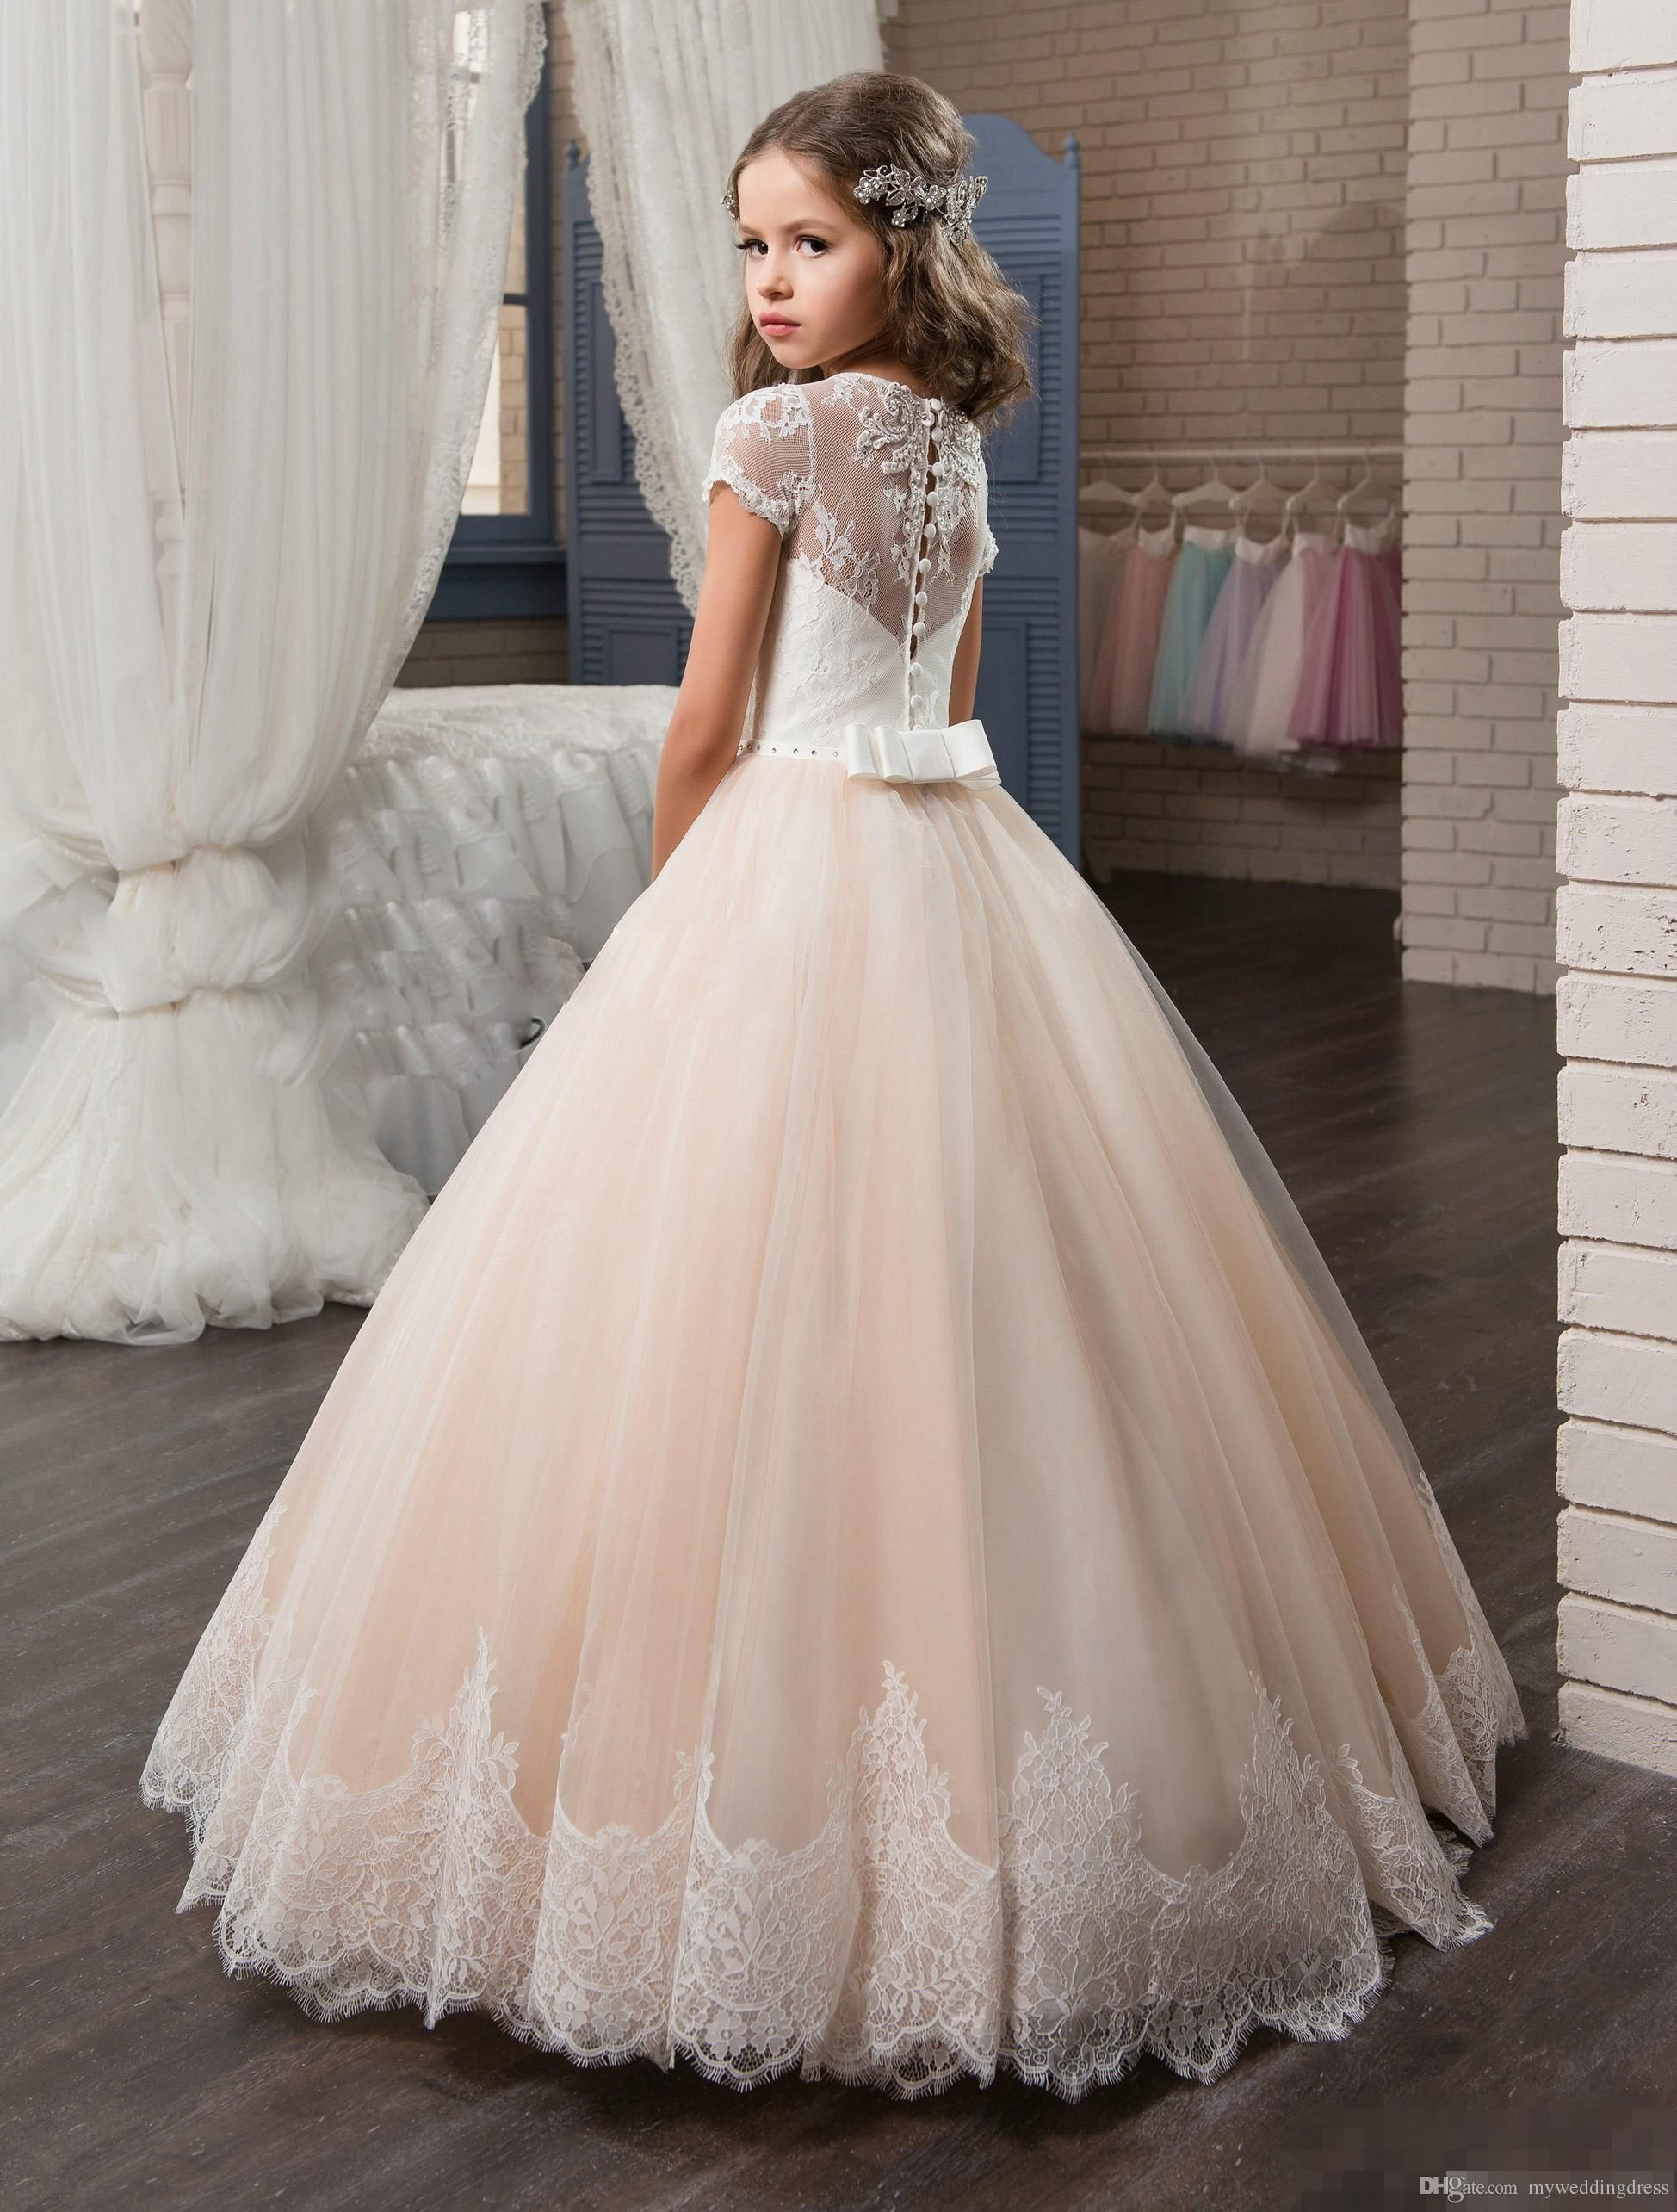 Lace Flower Dresses 2017 Baby Wedding Gowns With Sleeves Jewel Neck Baptism Long Little Kids First Communion Pageant Party Dress